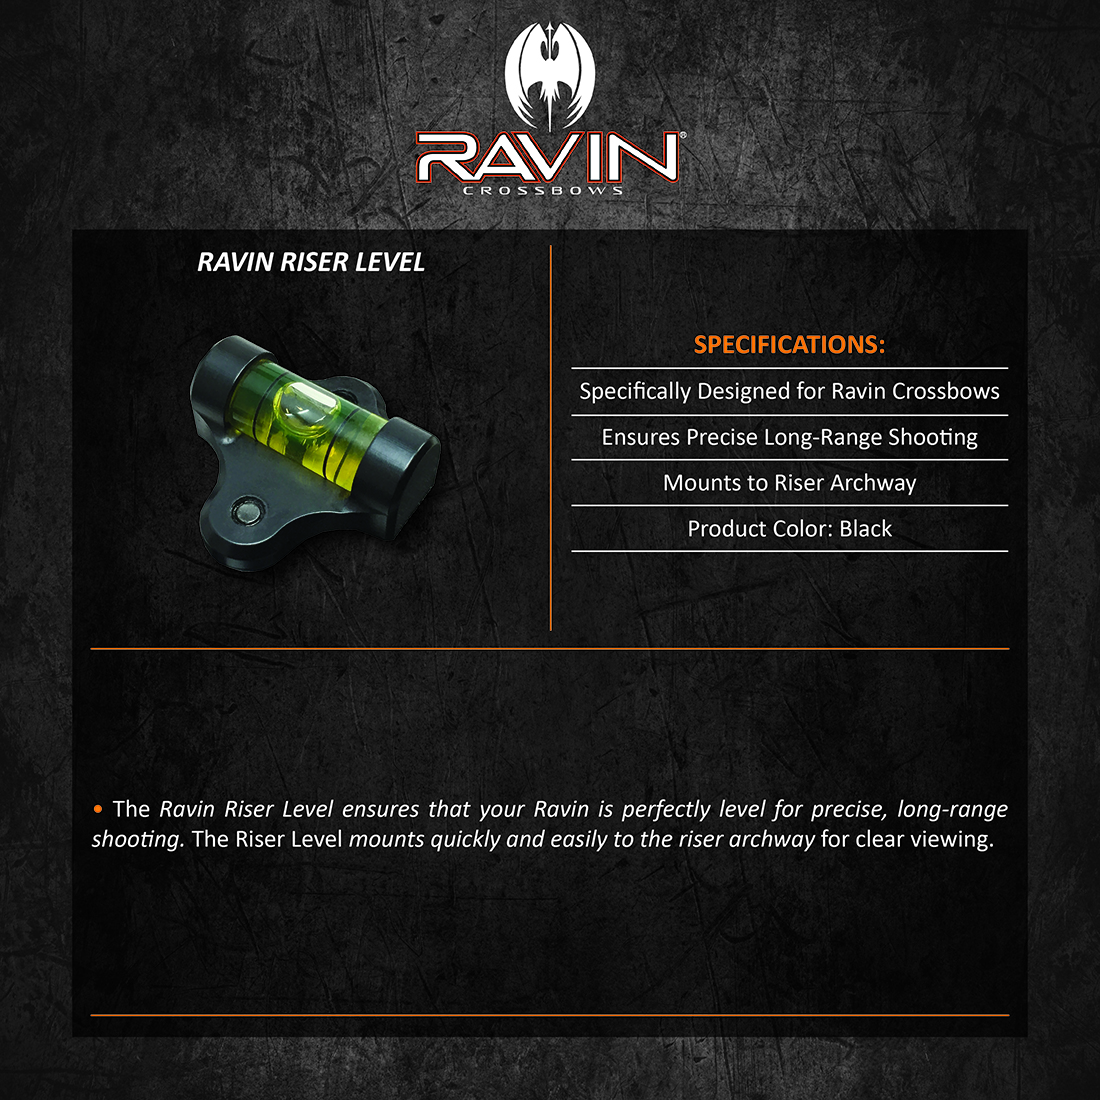 Ravin_Riser_Level_Product_Description